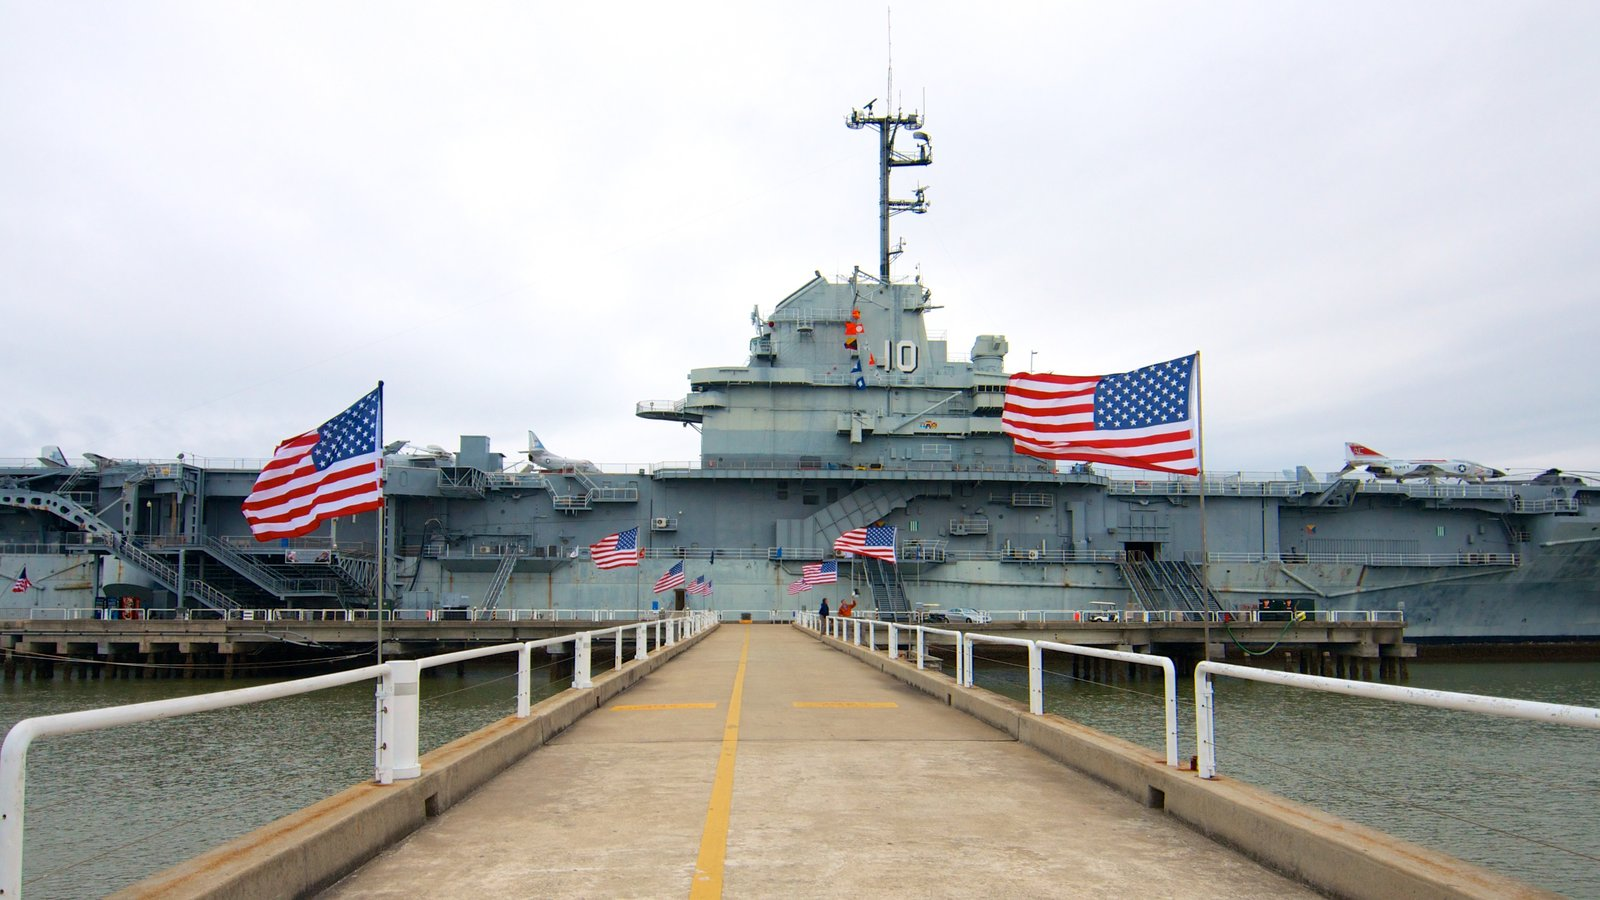 Patriots Point Naval and Maritime Museum mostrando itens militares